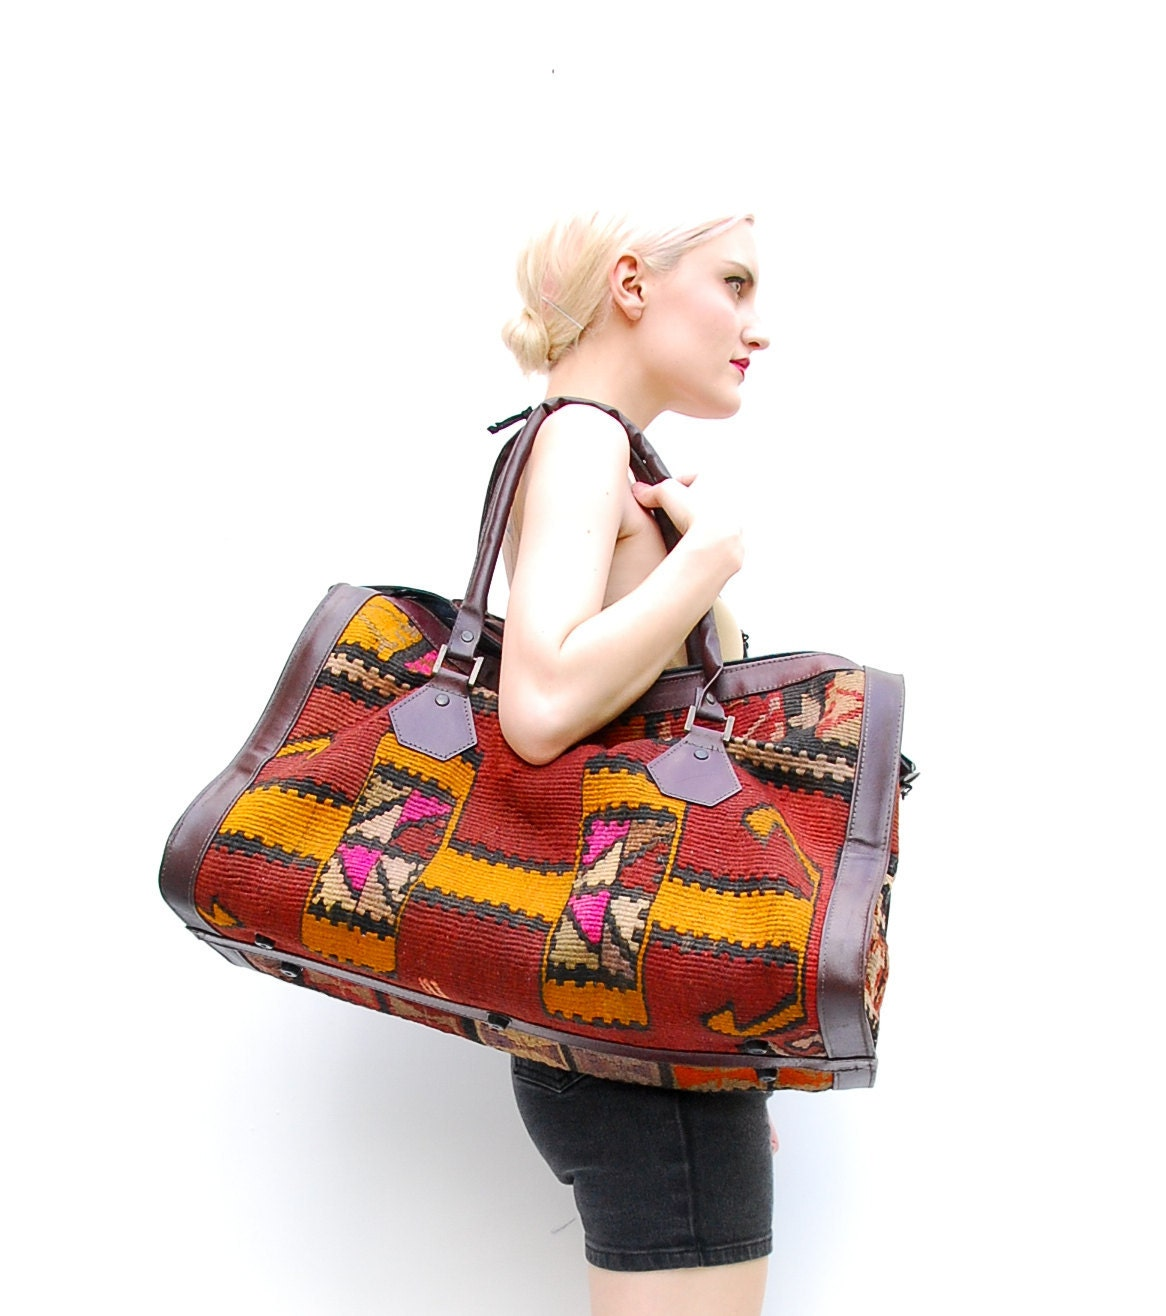 Vintage Turkish Kilim Weekender Bag - Navajo Weekender - Oversized Leather Bag - Woven Southwestern Tapestry Bag